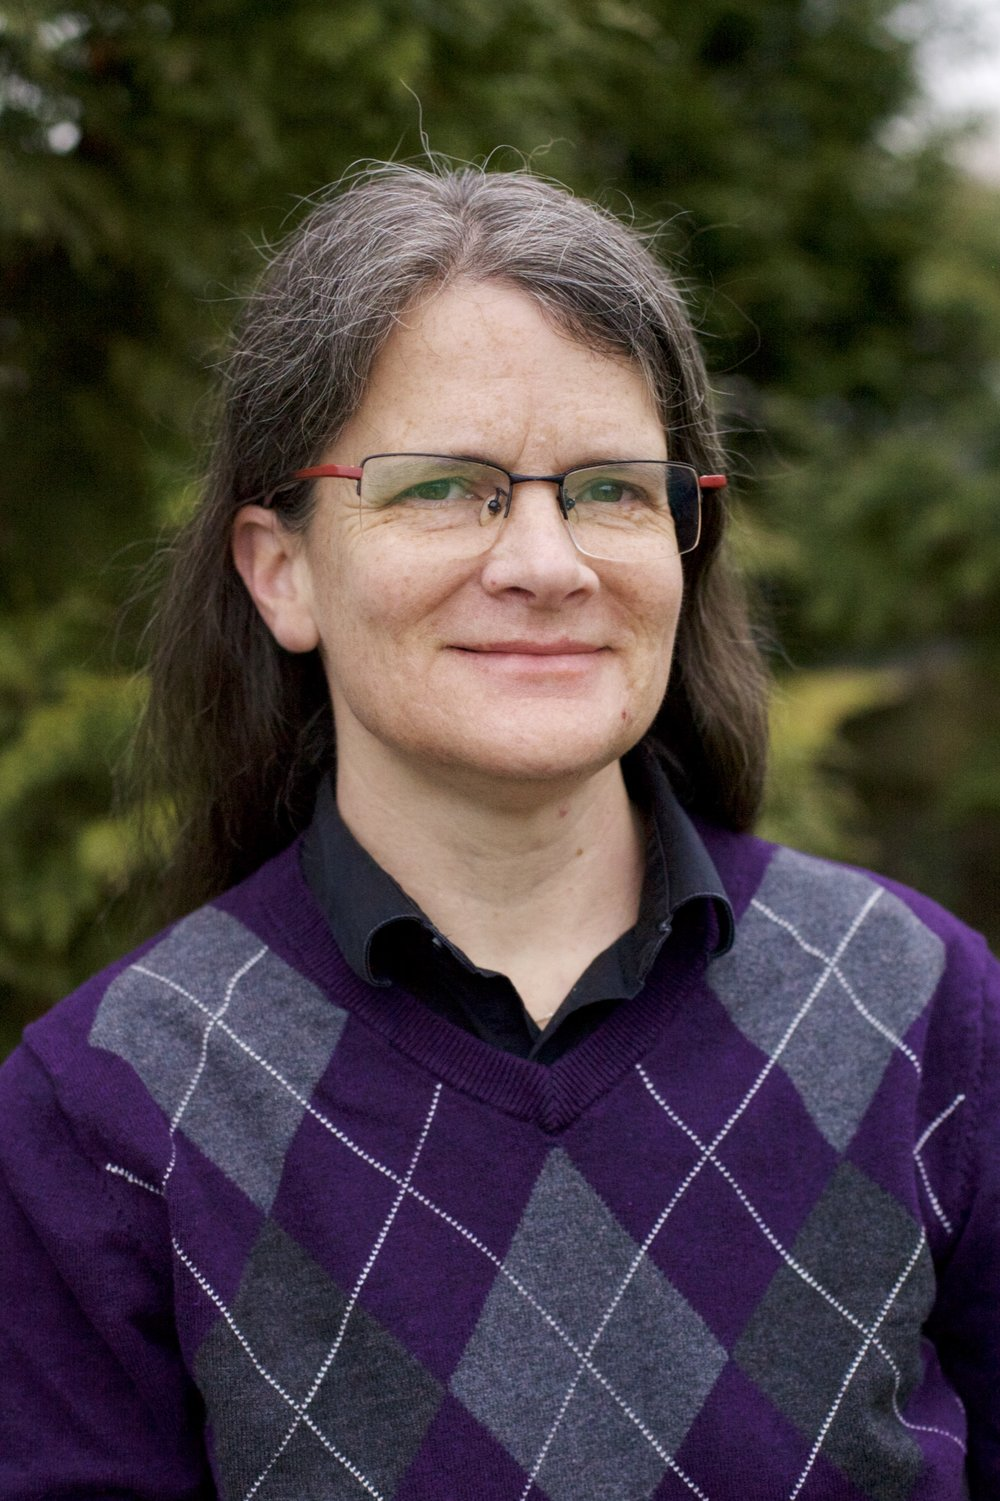 Cindy gilbert, MSW, LICSW, therapist    ∙  Adults  ∙  LGBTQIA issues  ∙  Gender non-conforming/non-binary  ∙  Sex positive  ∙  Kink/poly friendly  ∙  Depression  ∙  Anxiety  ∙  PTSD  ∙  Trauma  ∙  Grief and loss  ∙  Veterans